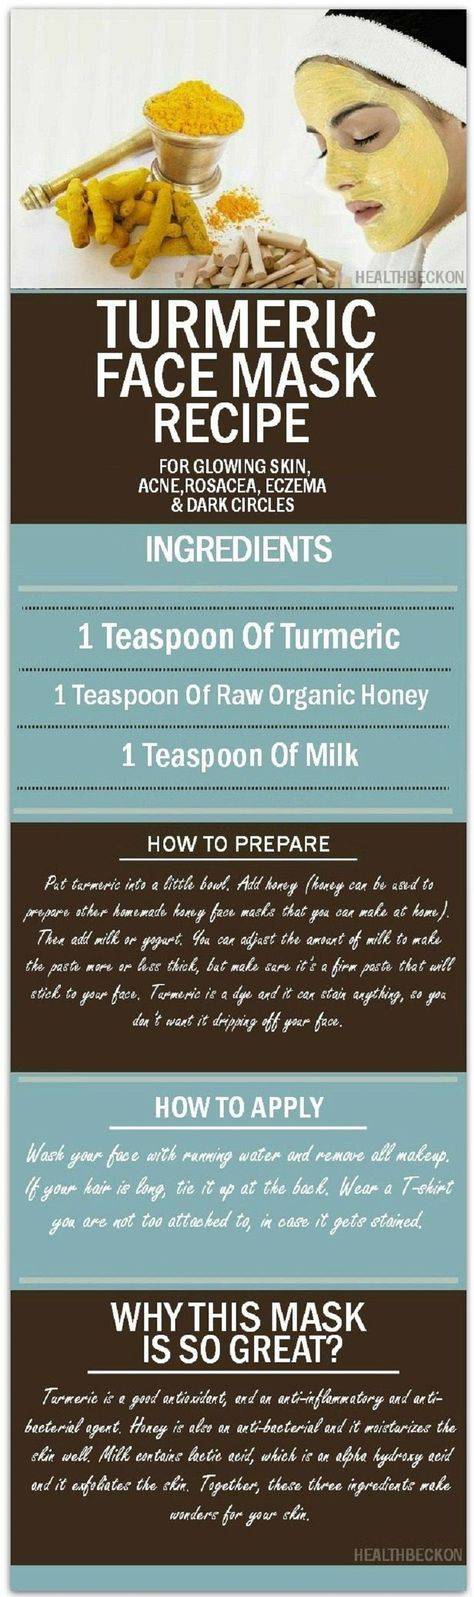 Turmeric Face Mask Recipe for Glowing Skin, Acne, Rosacea, Eczema and Dark Circles - 15 Ultimate Clear Skin Tips, Tricks and DIYs   GleamItUp